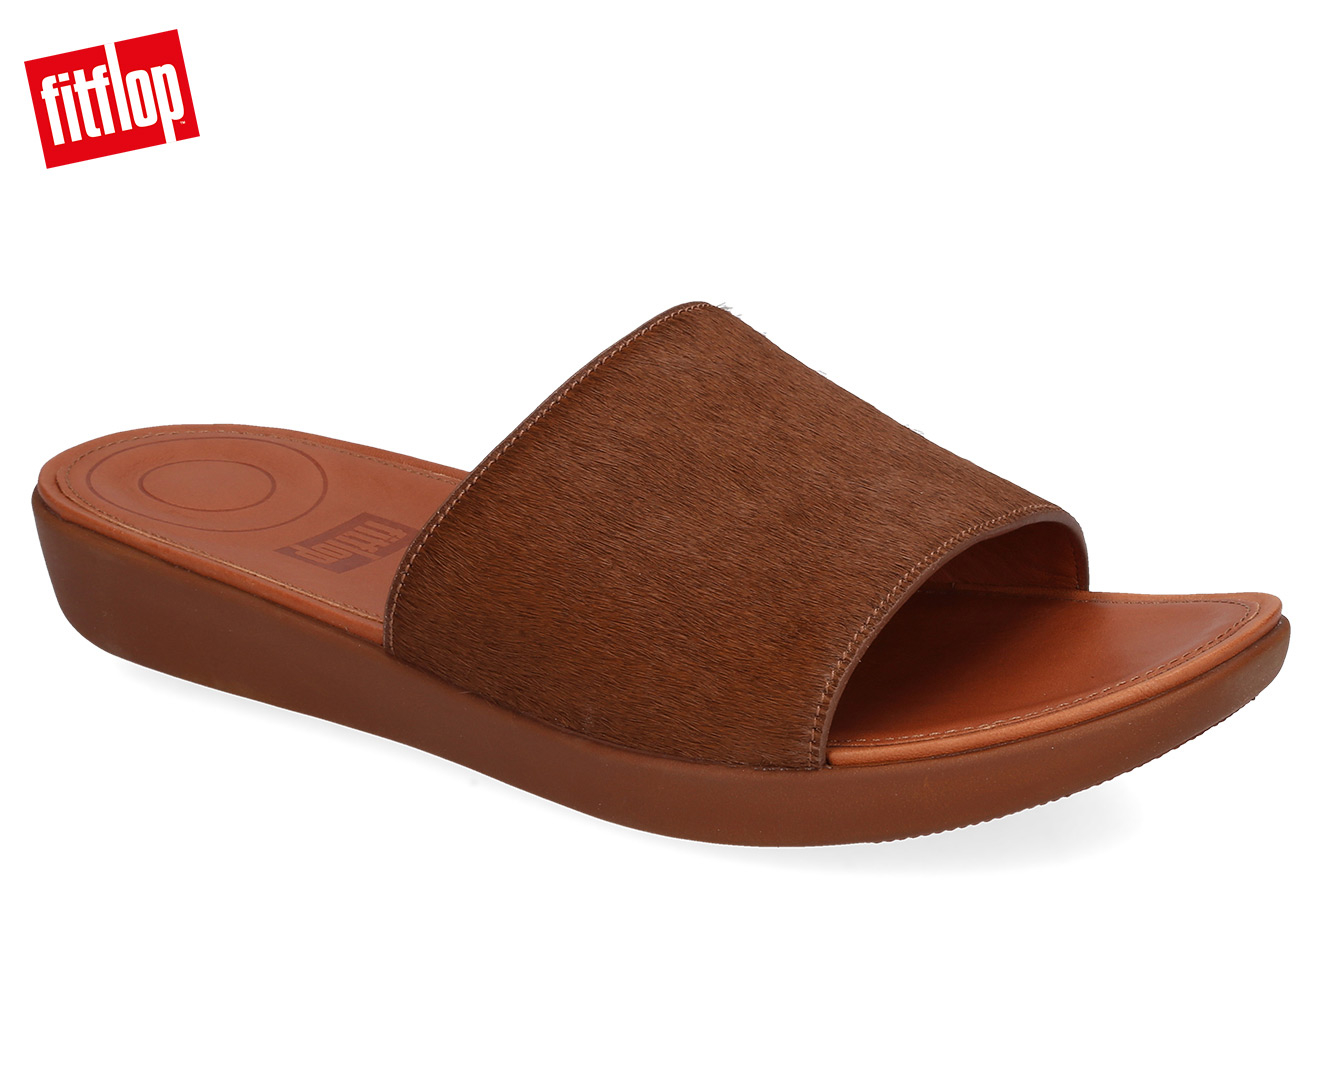 Details about FitFlop Women's Pony Hair Slide Tan